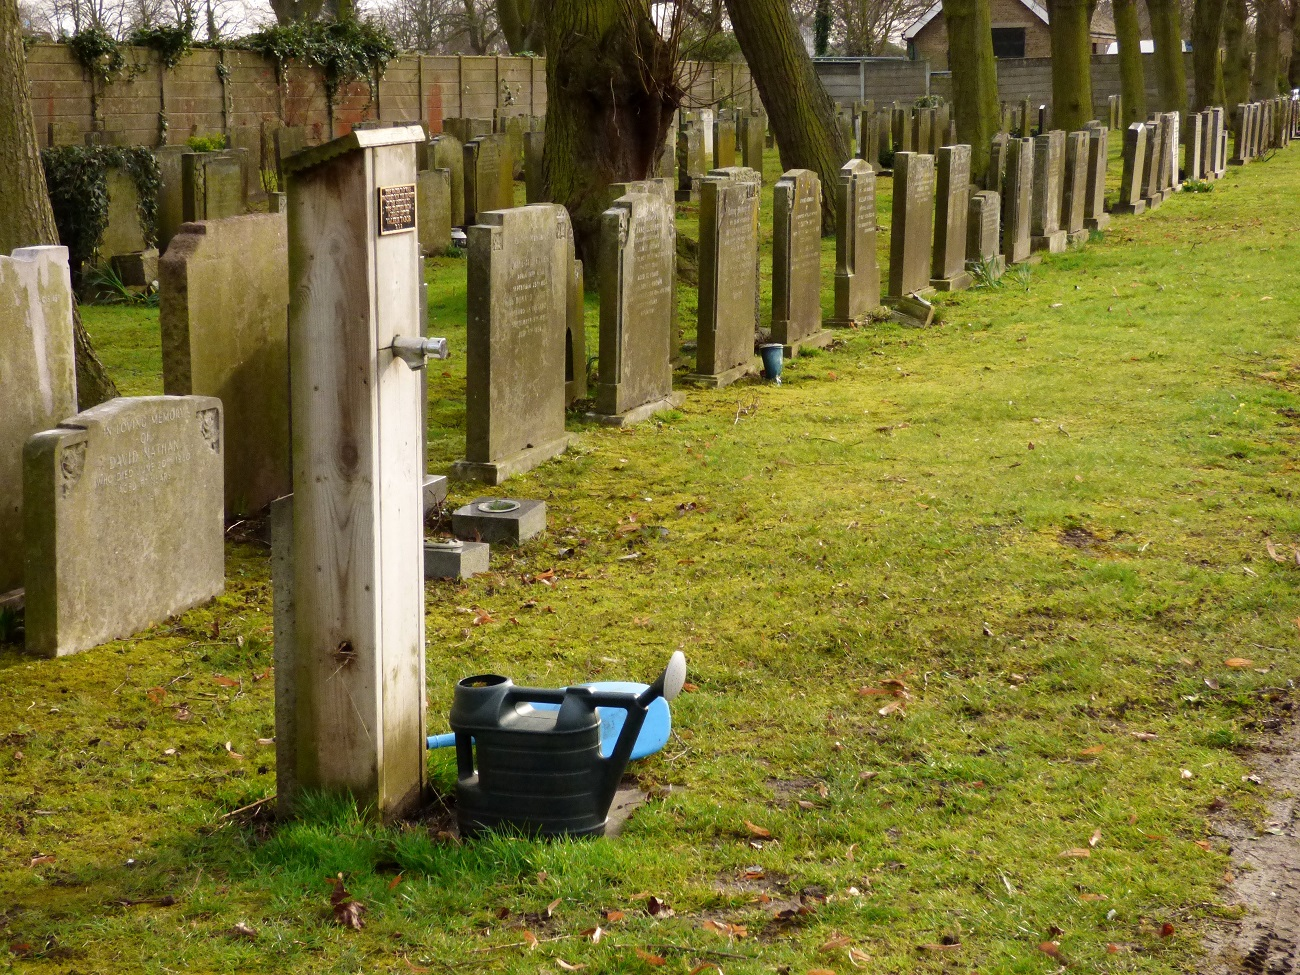 20170306_Redbridge_Barkingside-Cemetery_A-way-of-life